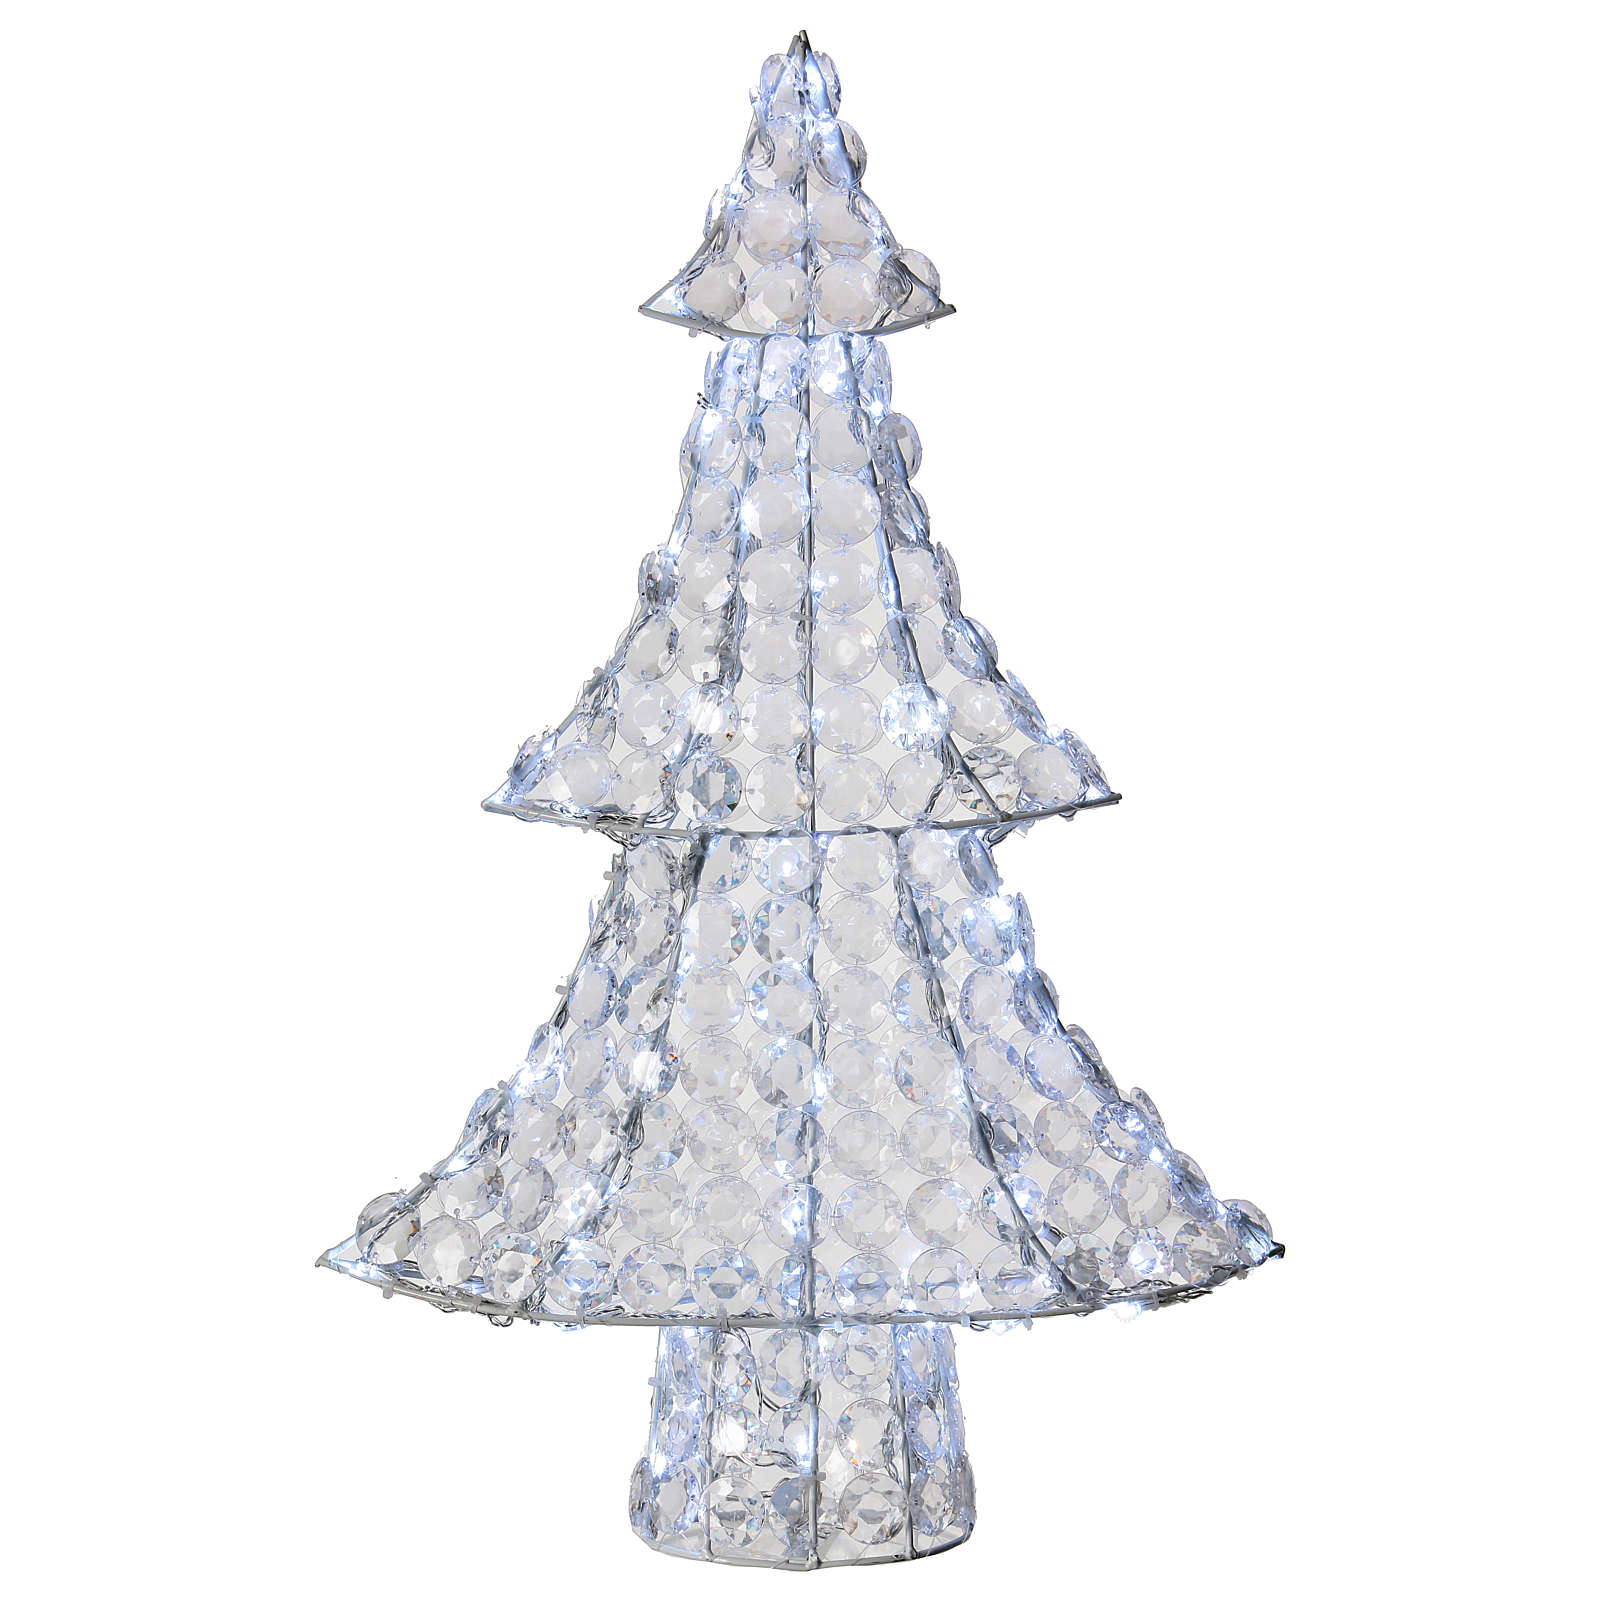 Lighted Christmas Tree.Lighted Christmas Tree 120 Led H 65 Cm Indoor Outdoor Use Ice White